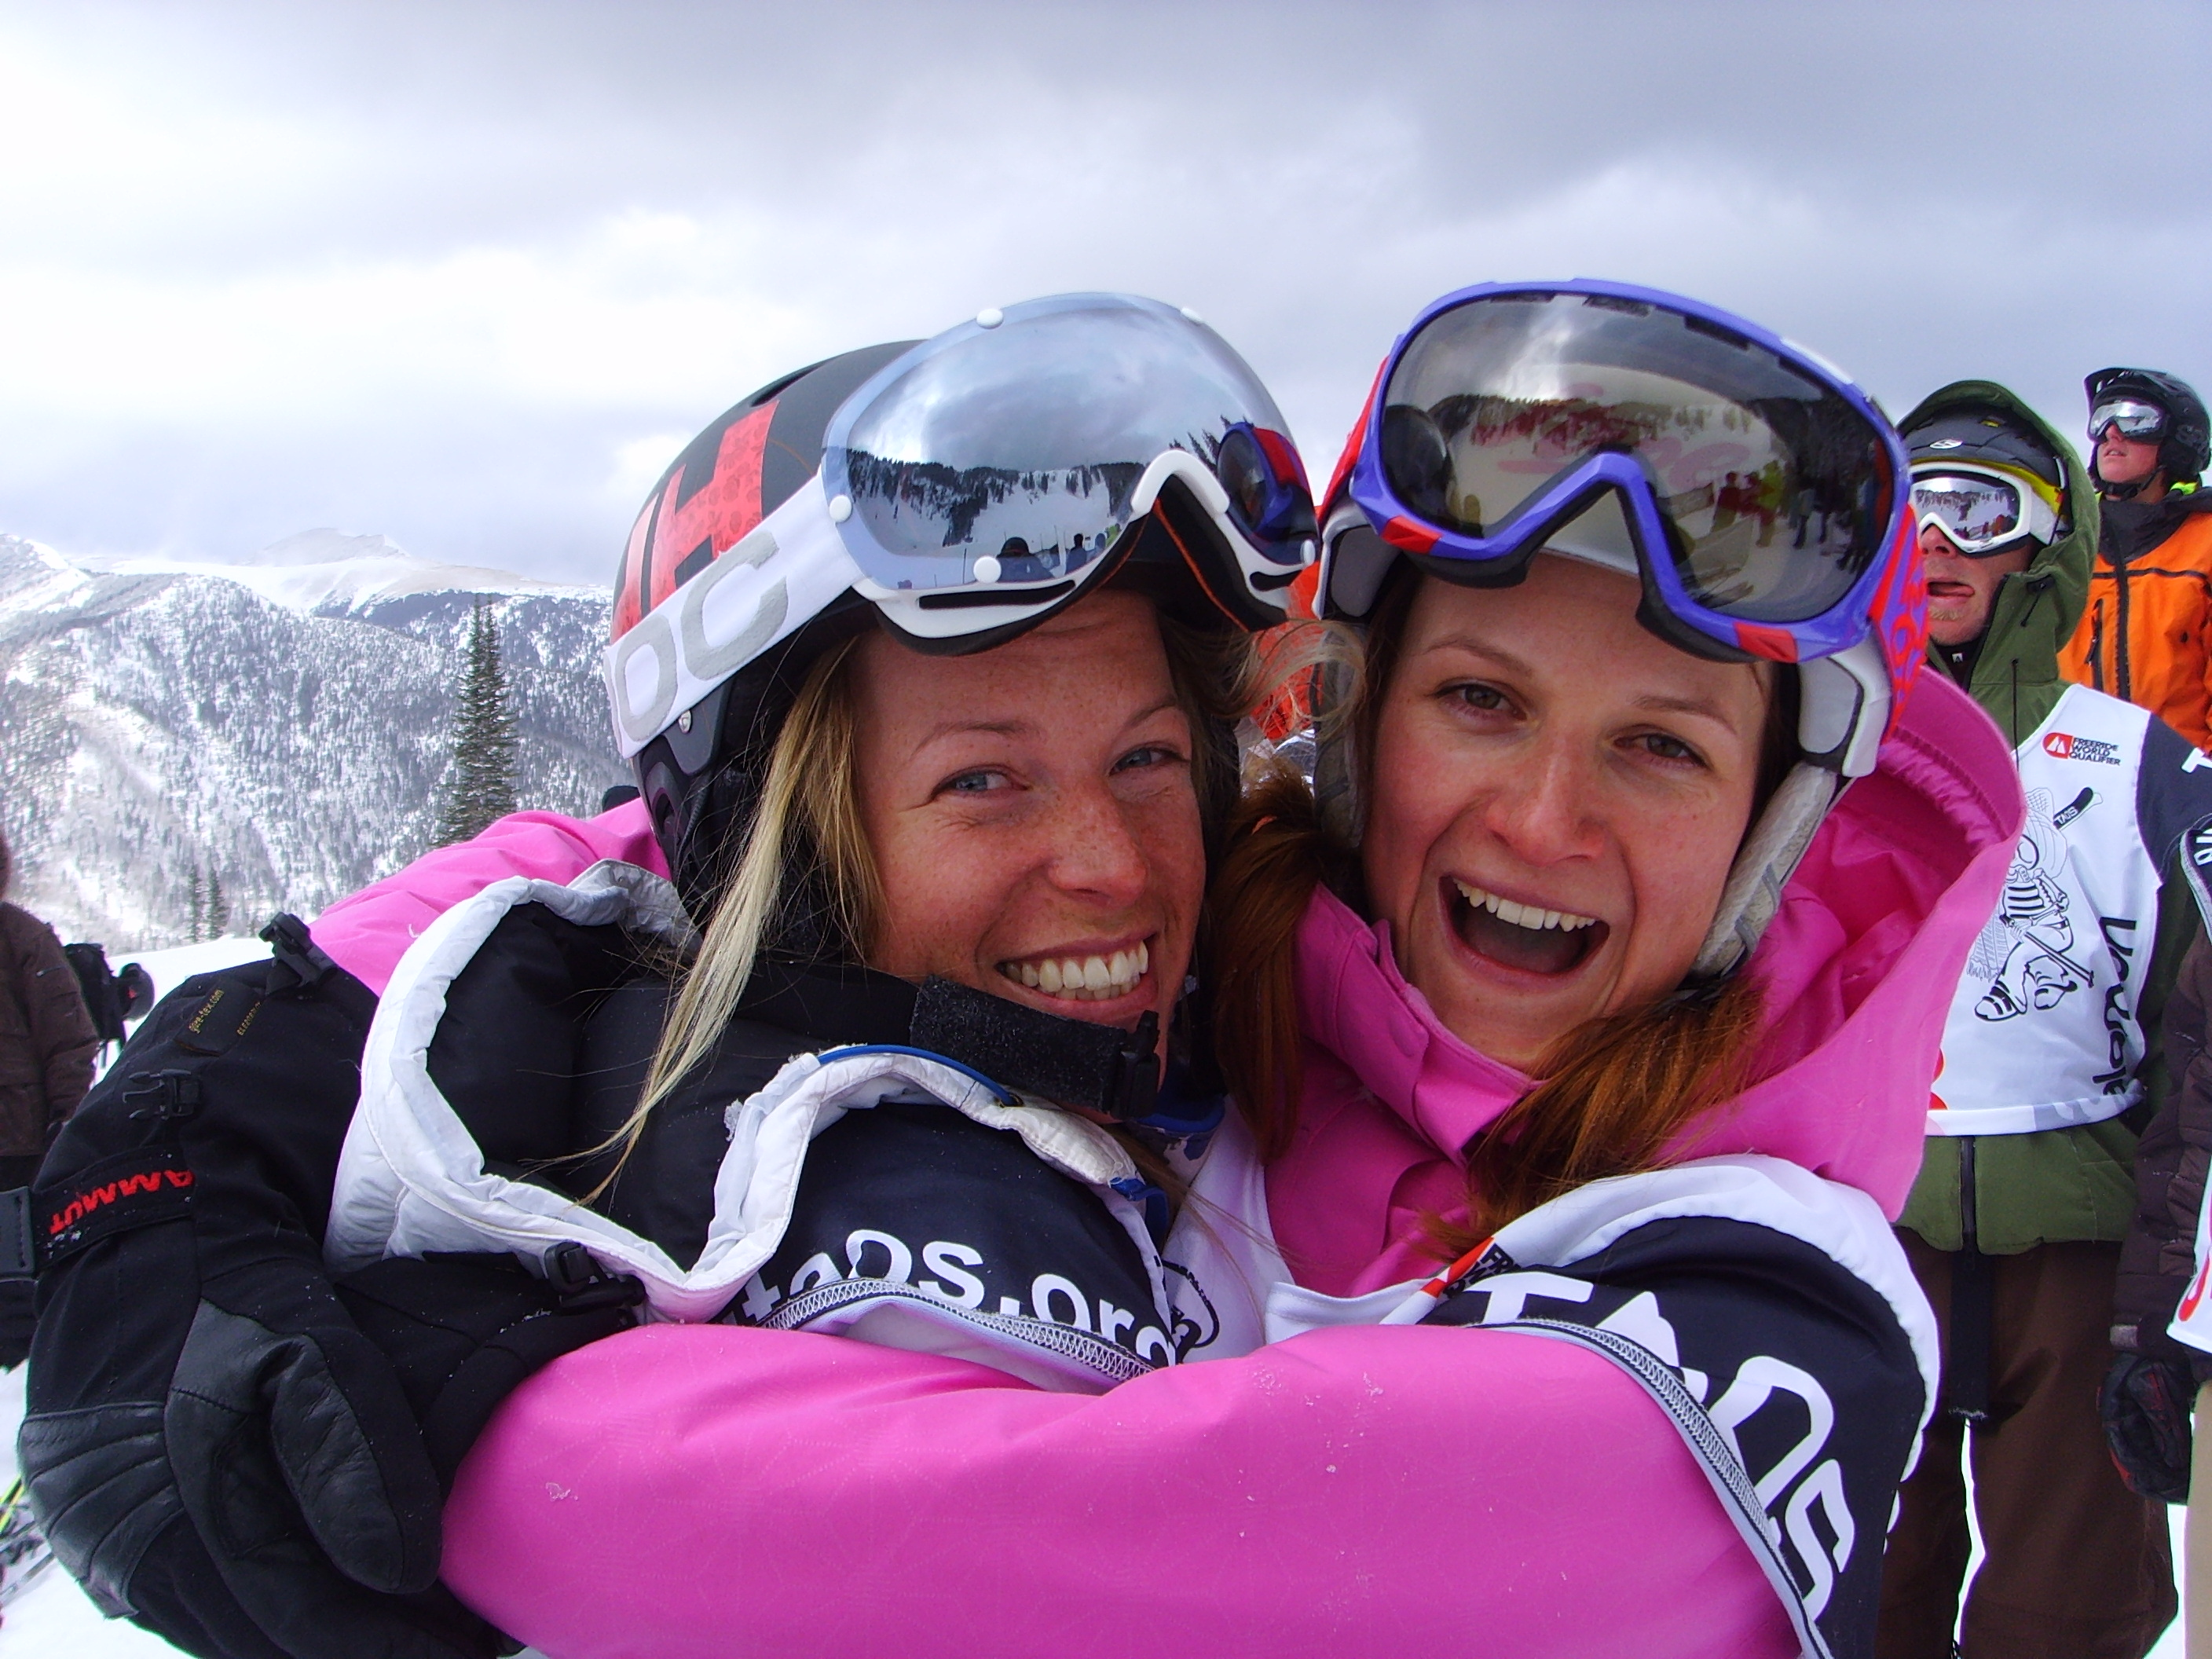 Kästle team mate Karine Falck-Pederson and I having a ball